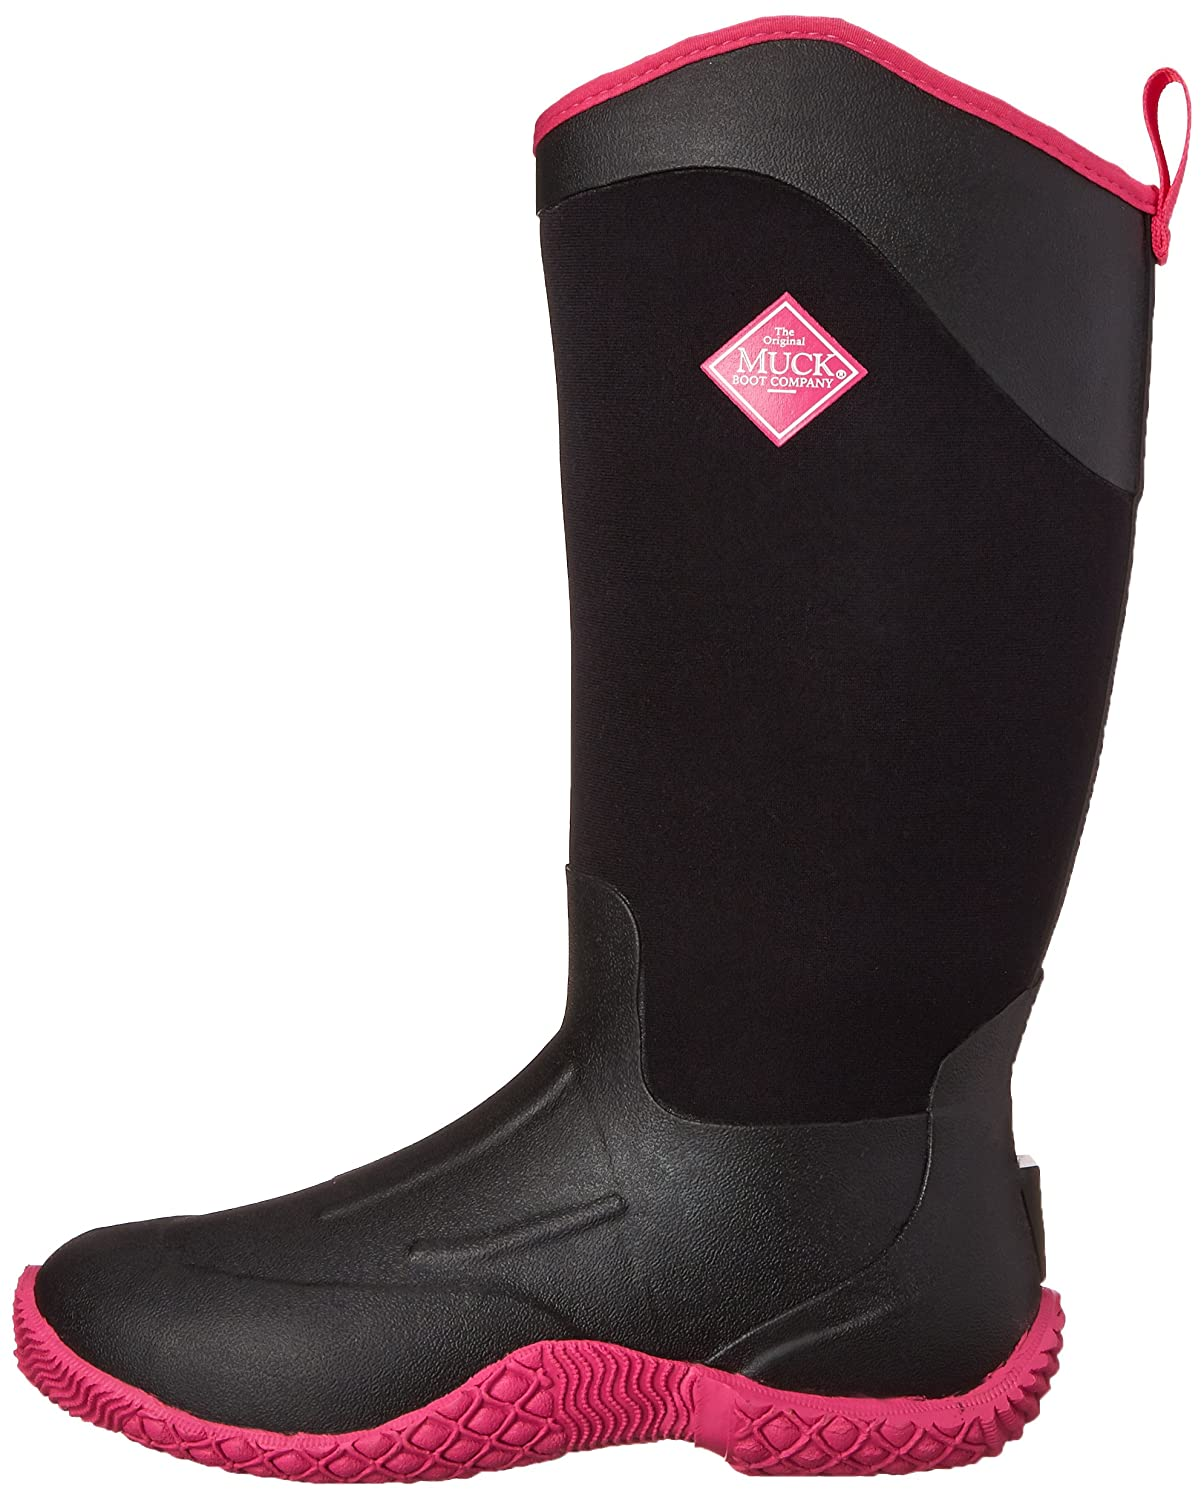 MuckBoots Women's Tack Boot II Tall Equestrian Work Boot Tack B00NV61Z2W 5 B(M) US|Black/Hot Pink 305587